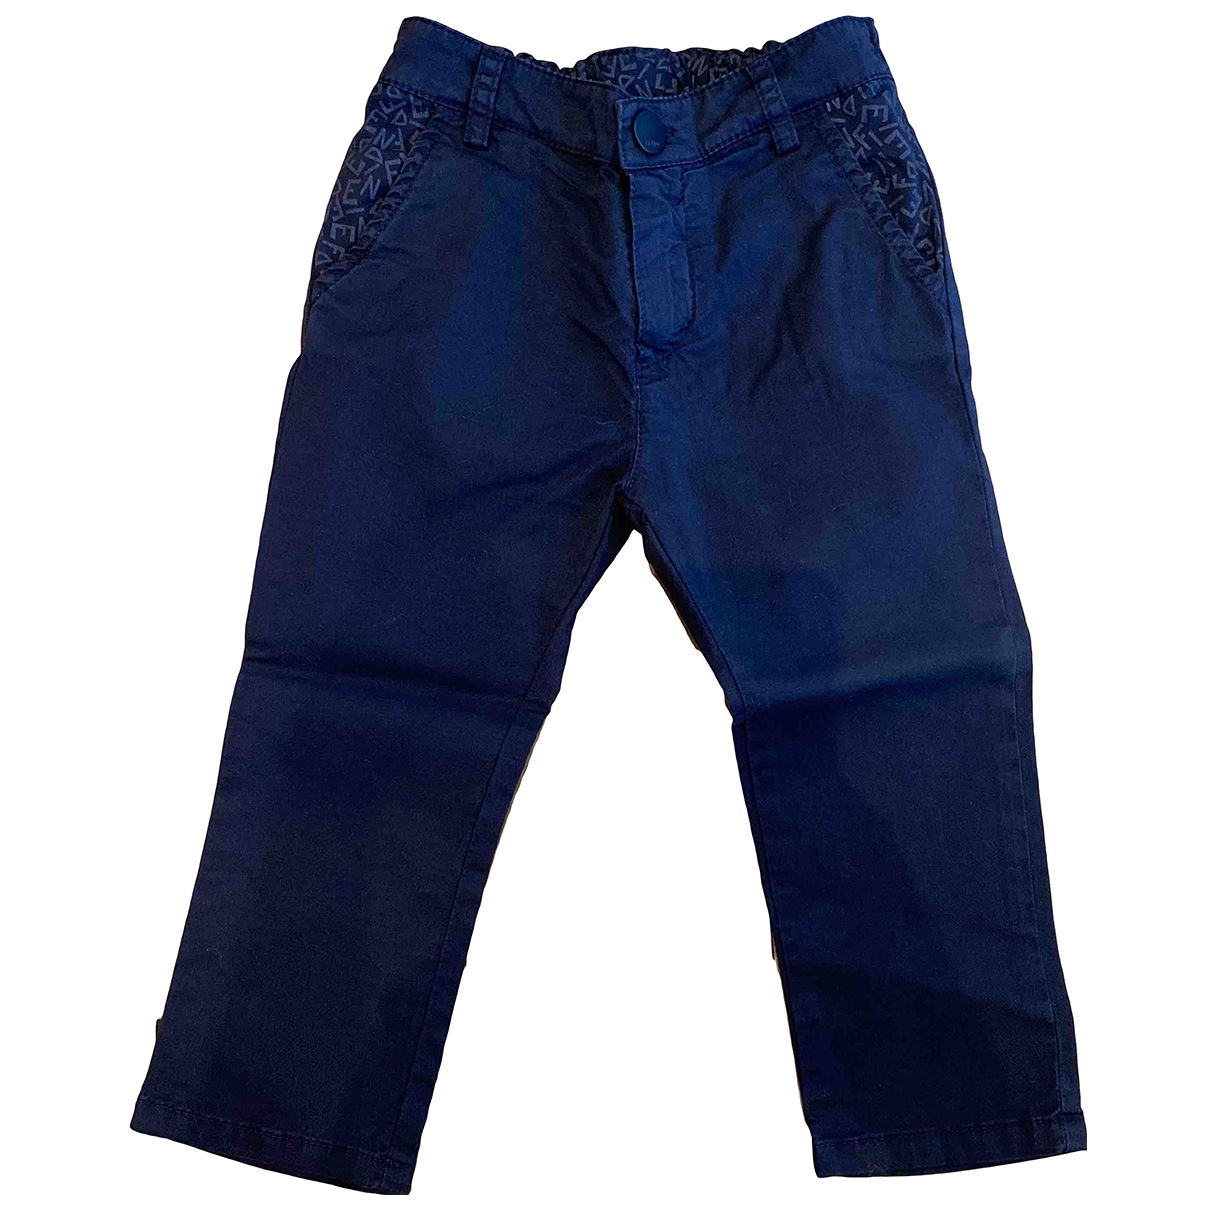 Fendi \N Blue Cotton Trousers for Kids 18 months - up to 81cm FR